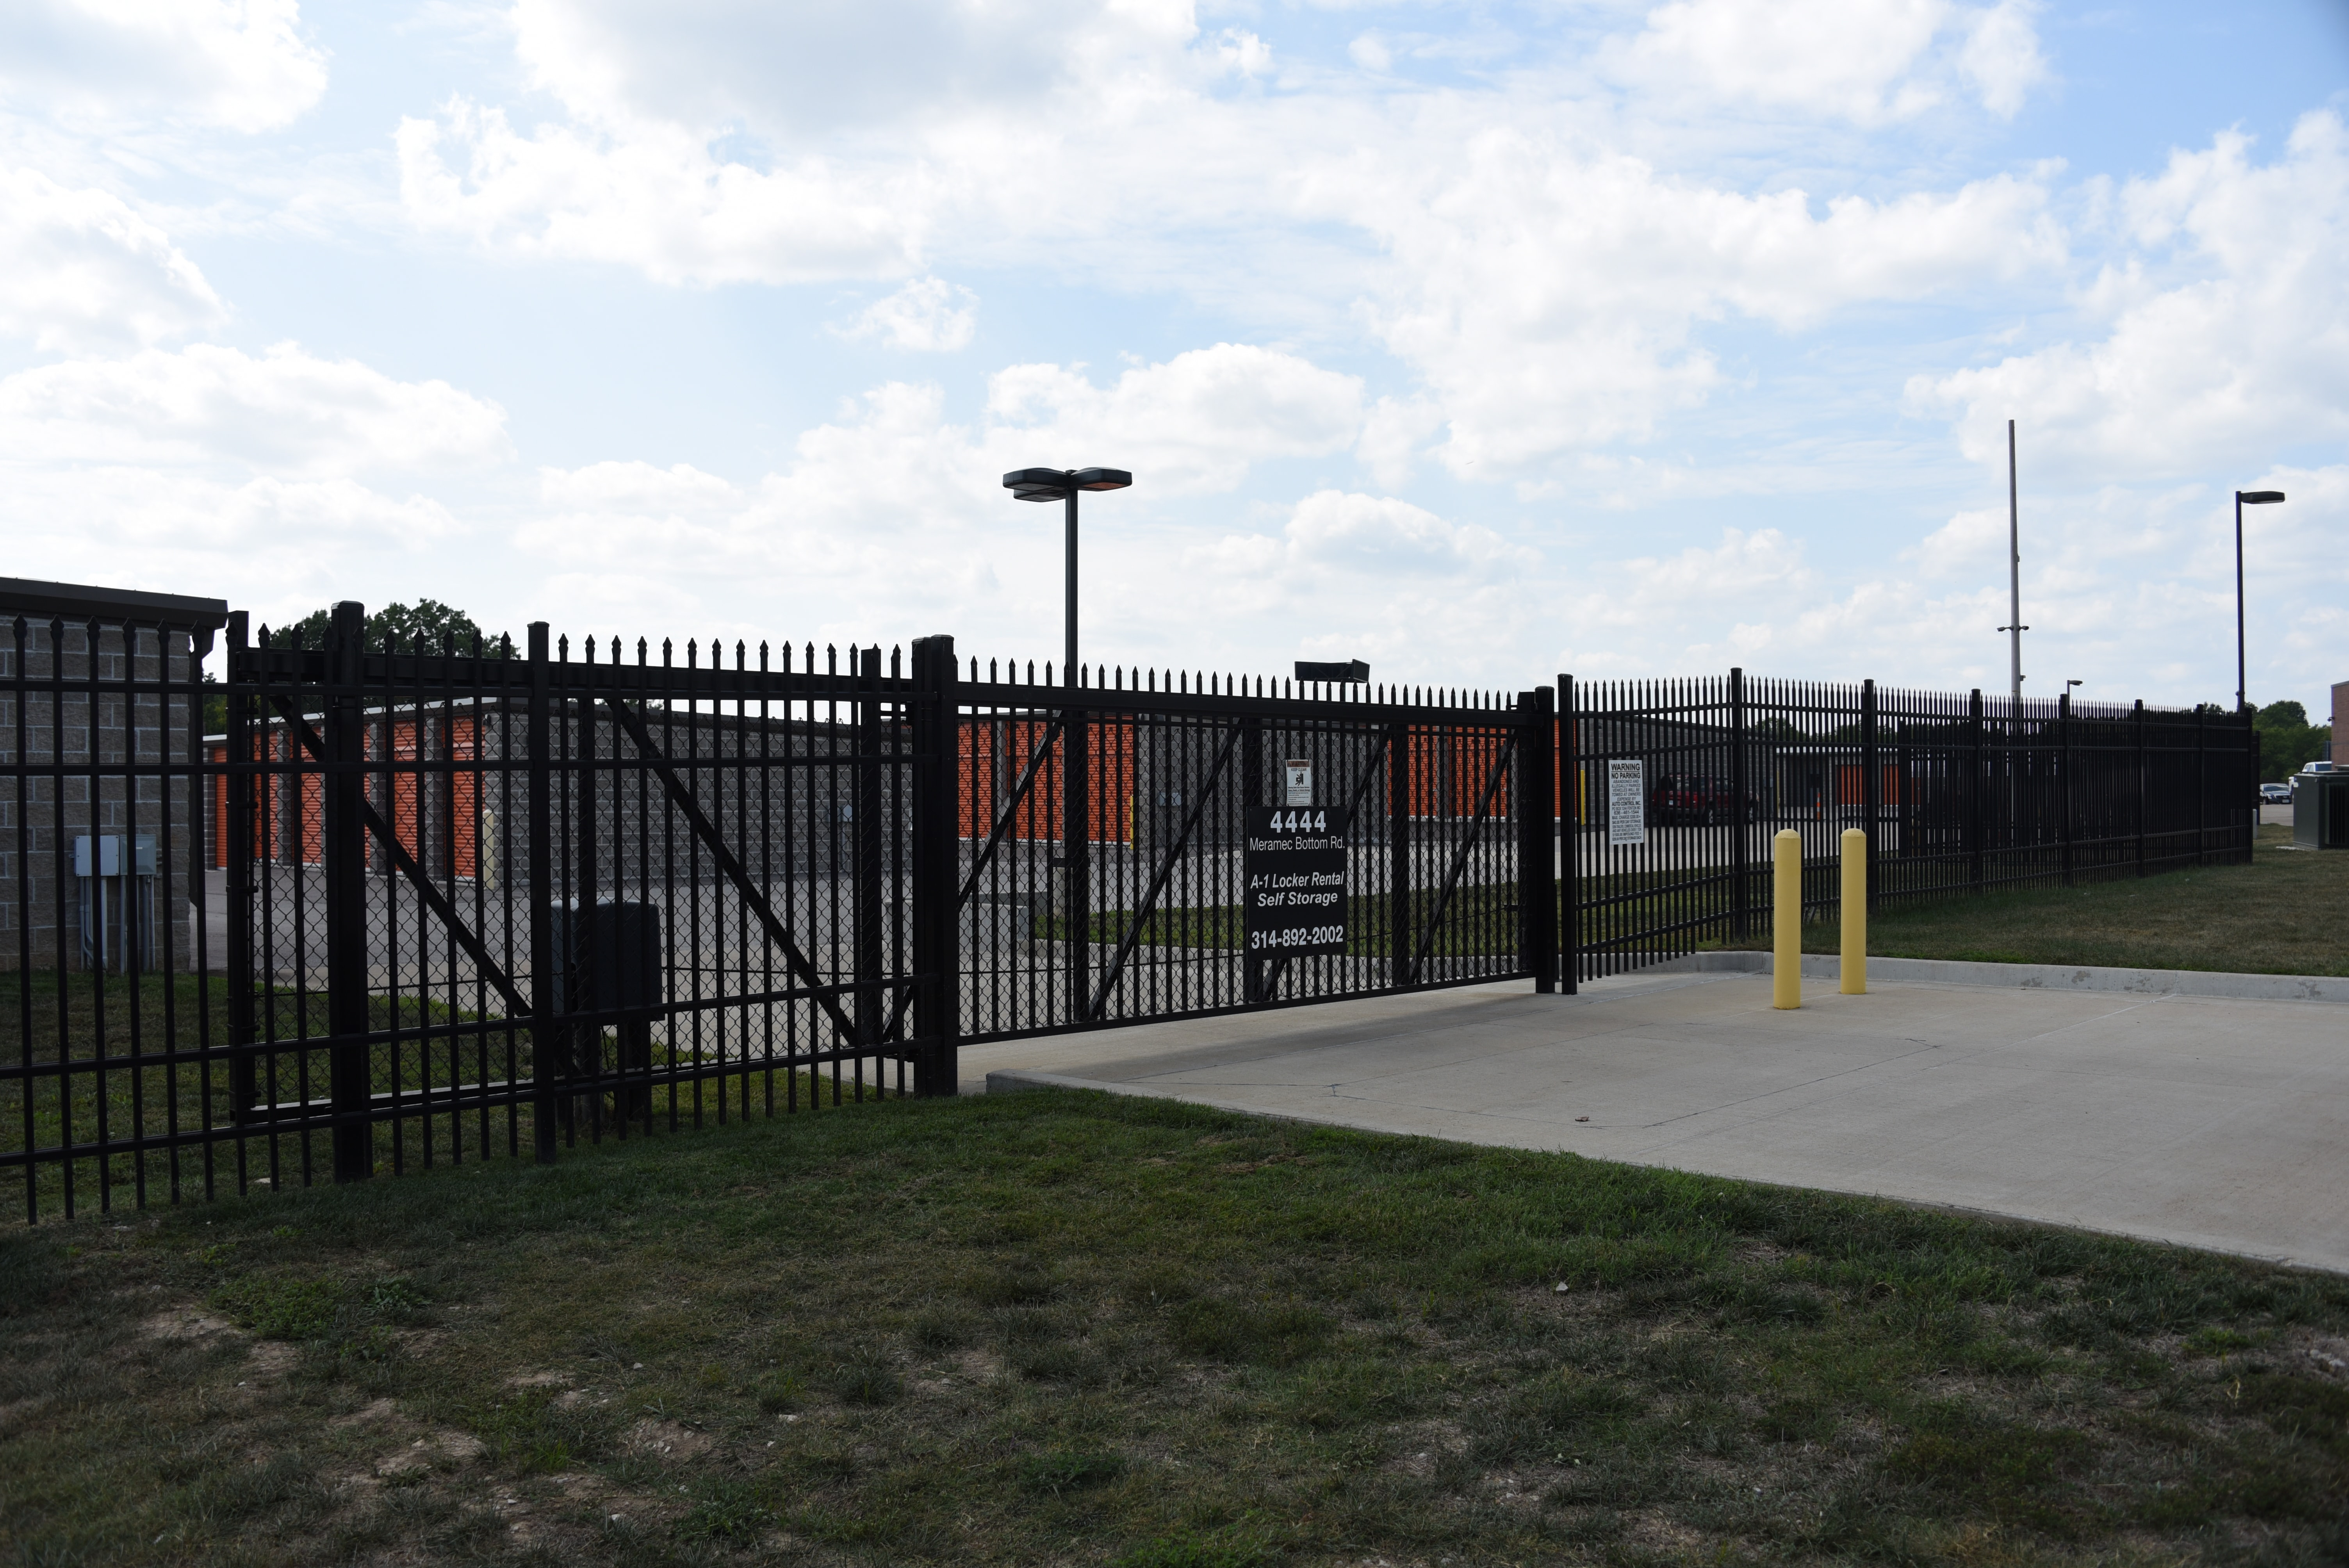 Industrial grade fencing installed by Maintenance-Free Outdoor Solutions is a great choice for securing industrial and commercial properties